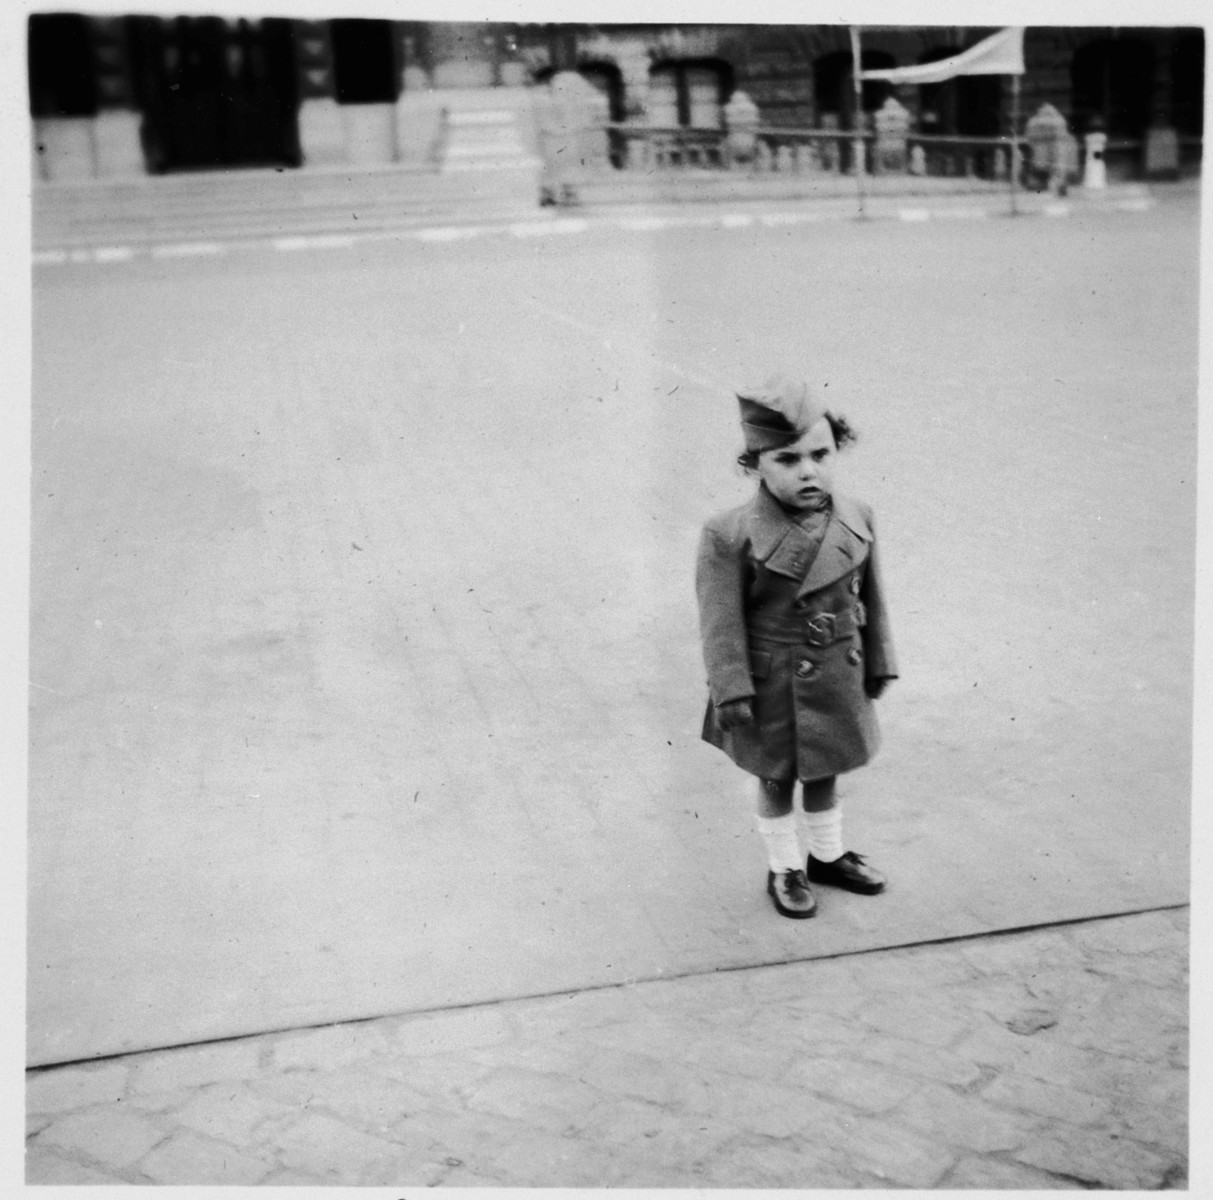 A young Jewish boy poses on a sidewalk in Brussels, near the apartment where he is living in hiding as a Christian with his parents.  Pictured is Nathan (Nounou) Ciechanow.  He was subsequently deported to his death in Auschwitz.